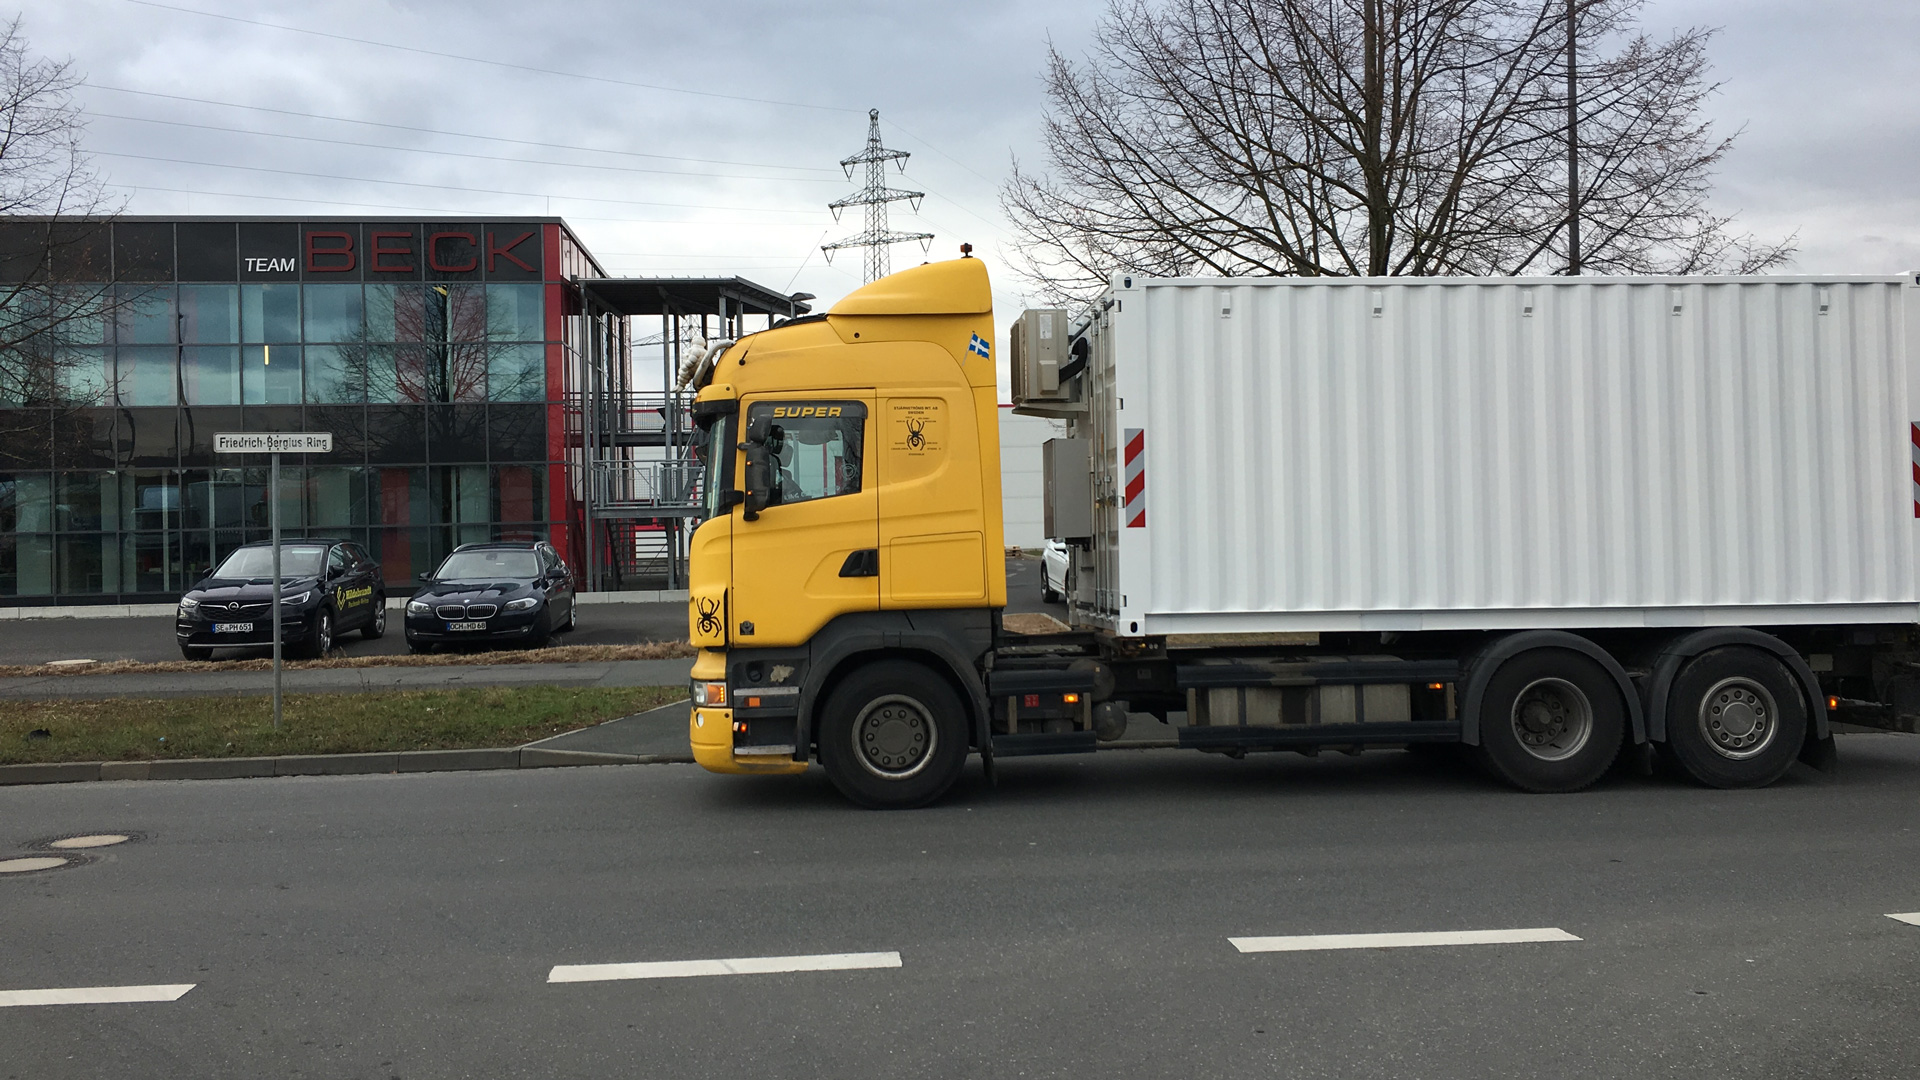 The battery storage facility is being transported by truck through Germany and Sweden running on biodiesel.